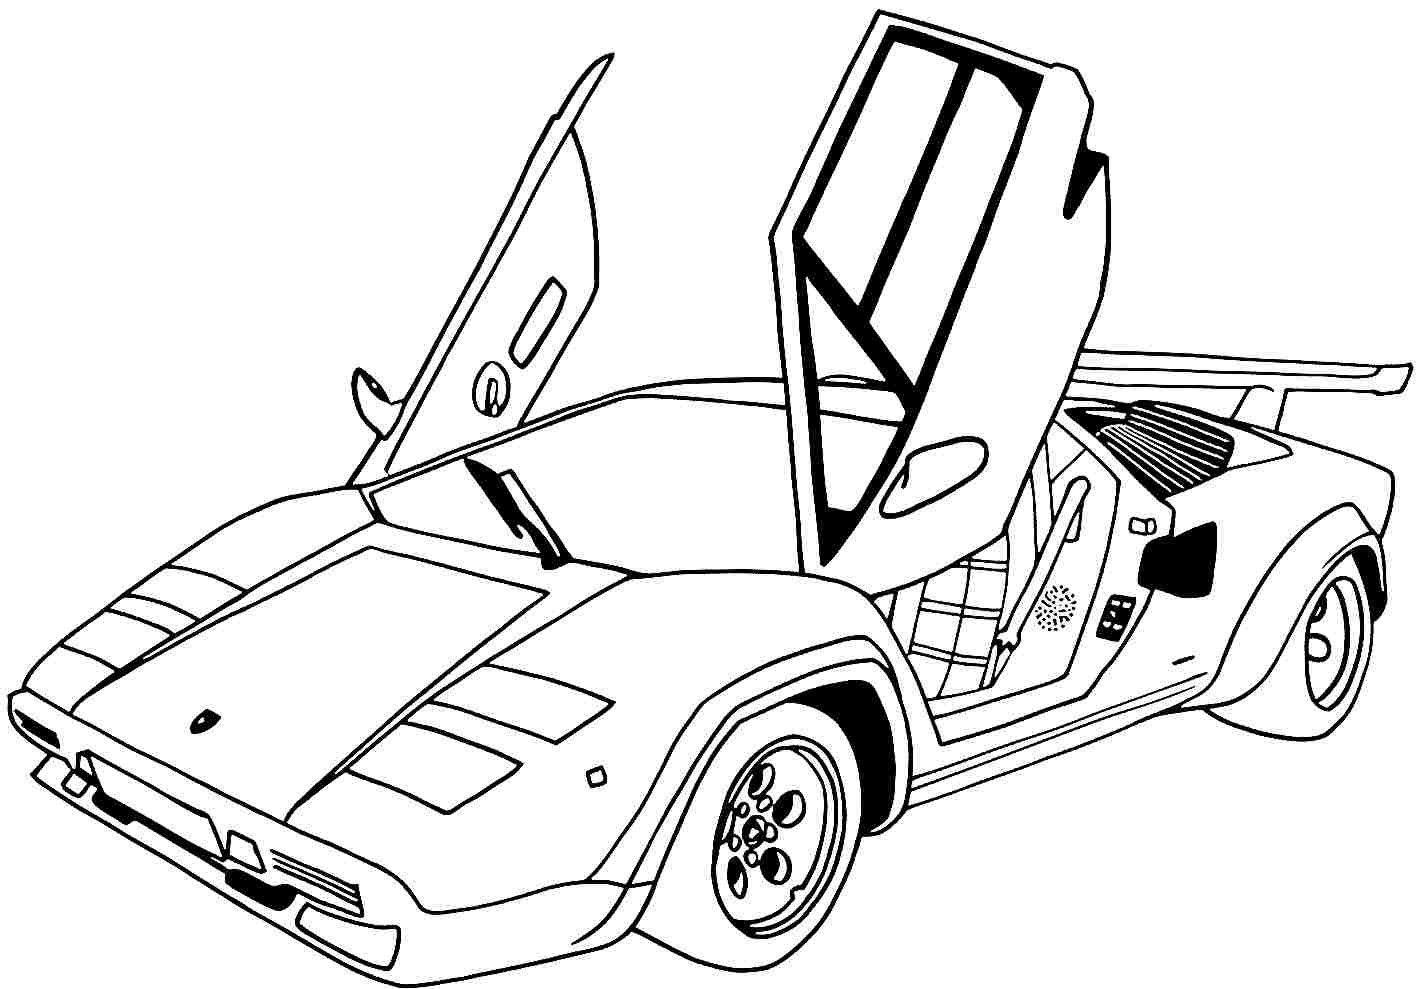 free car coloring pages free printable race car coloring pages for kids free car coloring pages